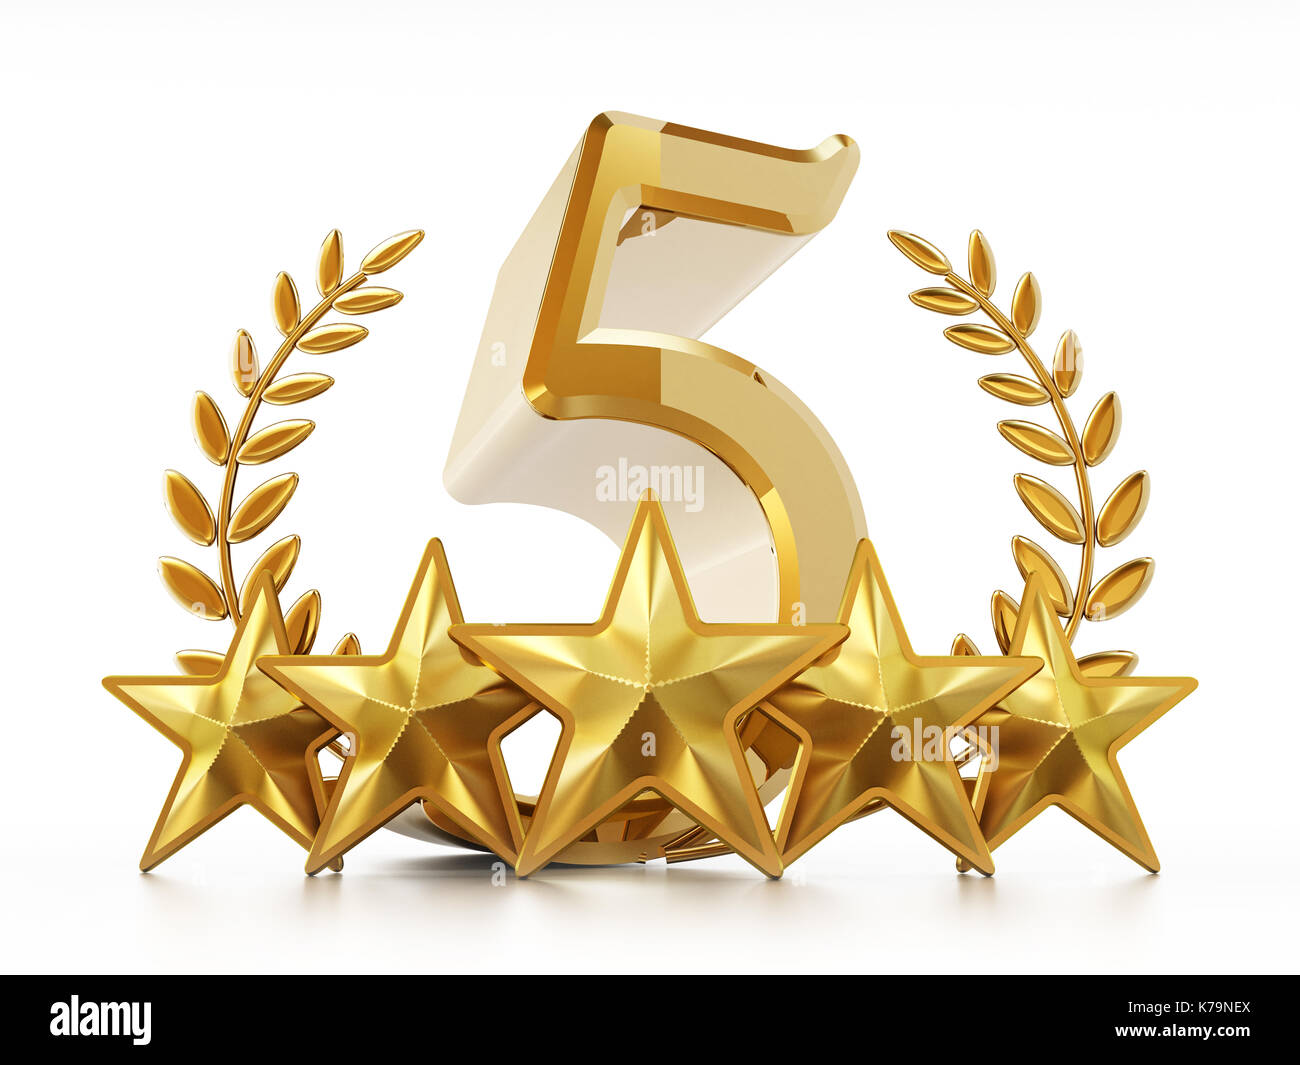 5 Star Rating Stock Photos 5 Star Rating Stock Images Alamy